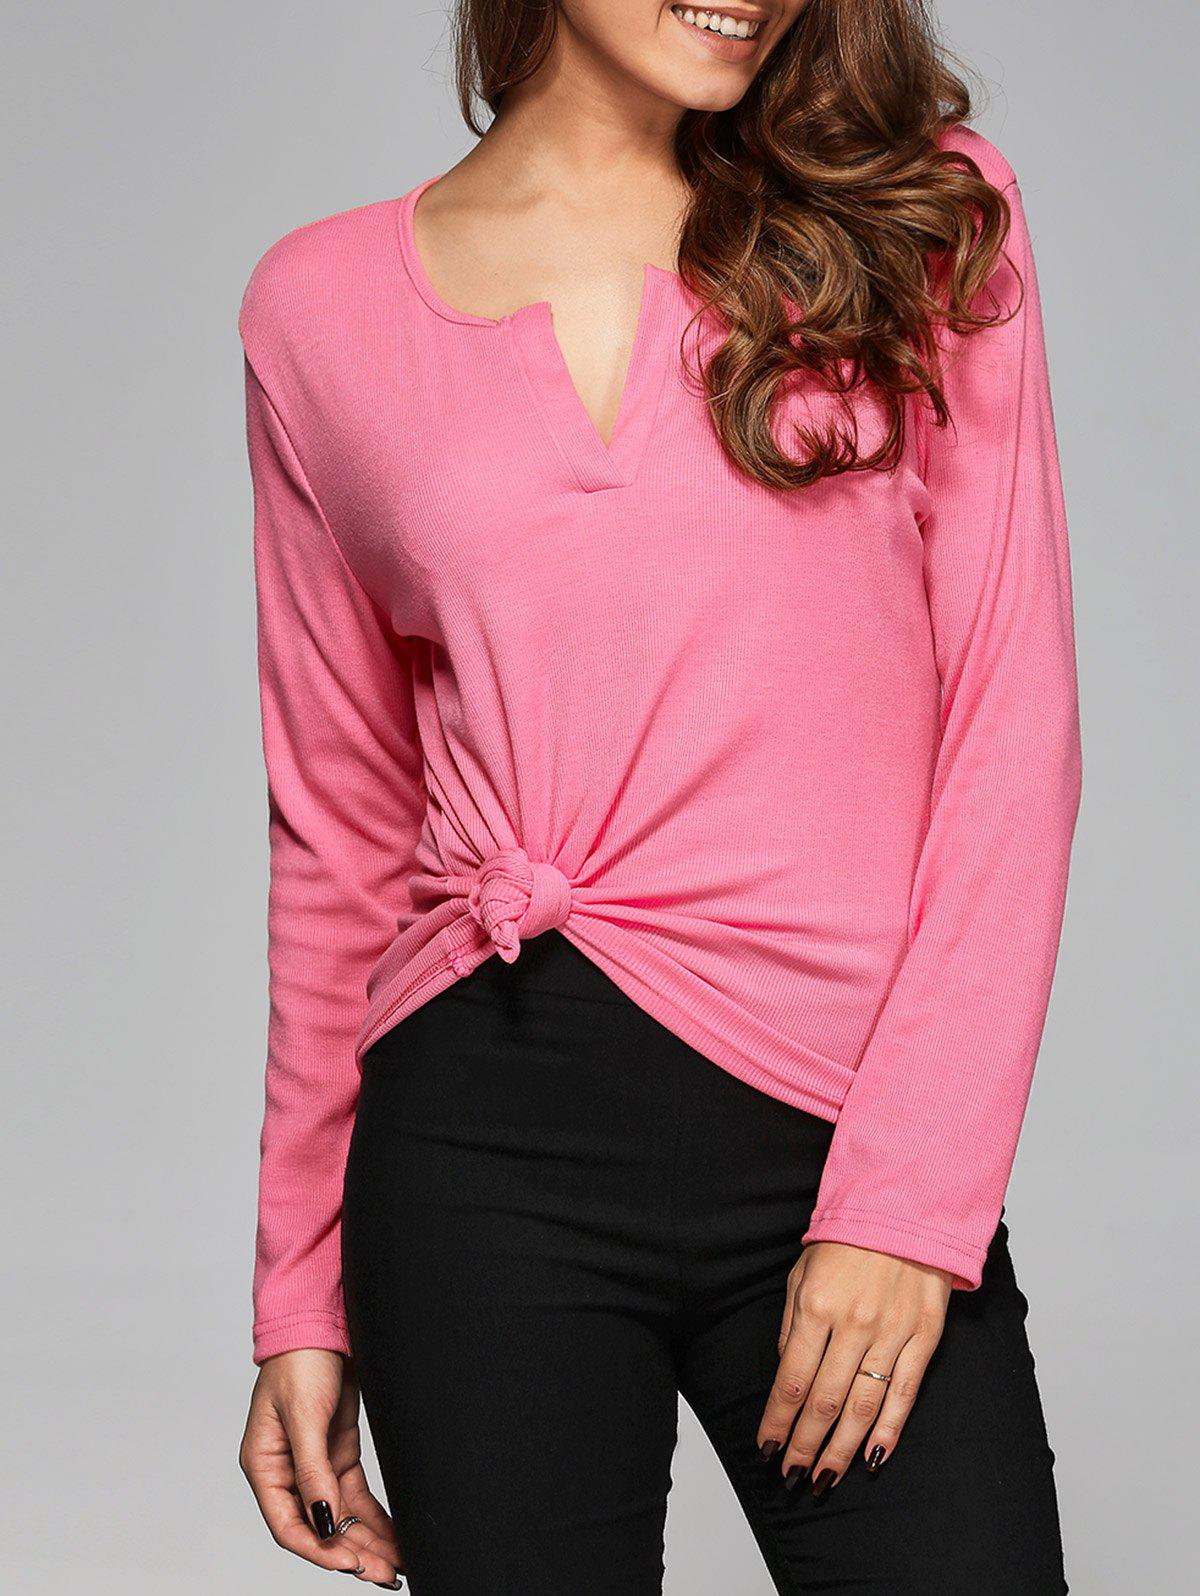 V Neck Slimming T-Shirt - PINK L